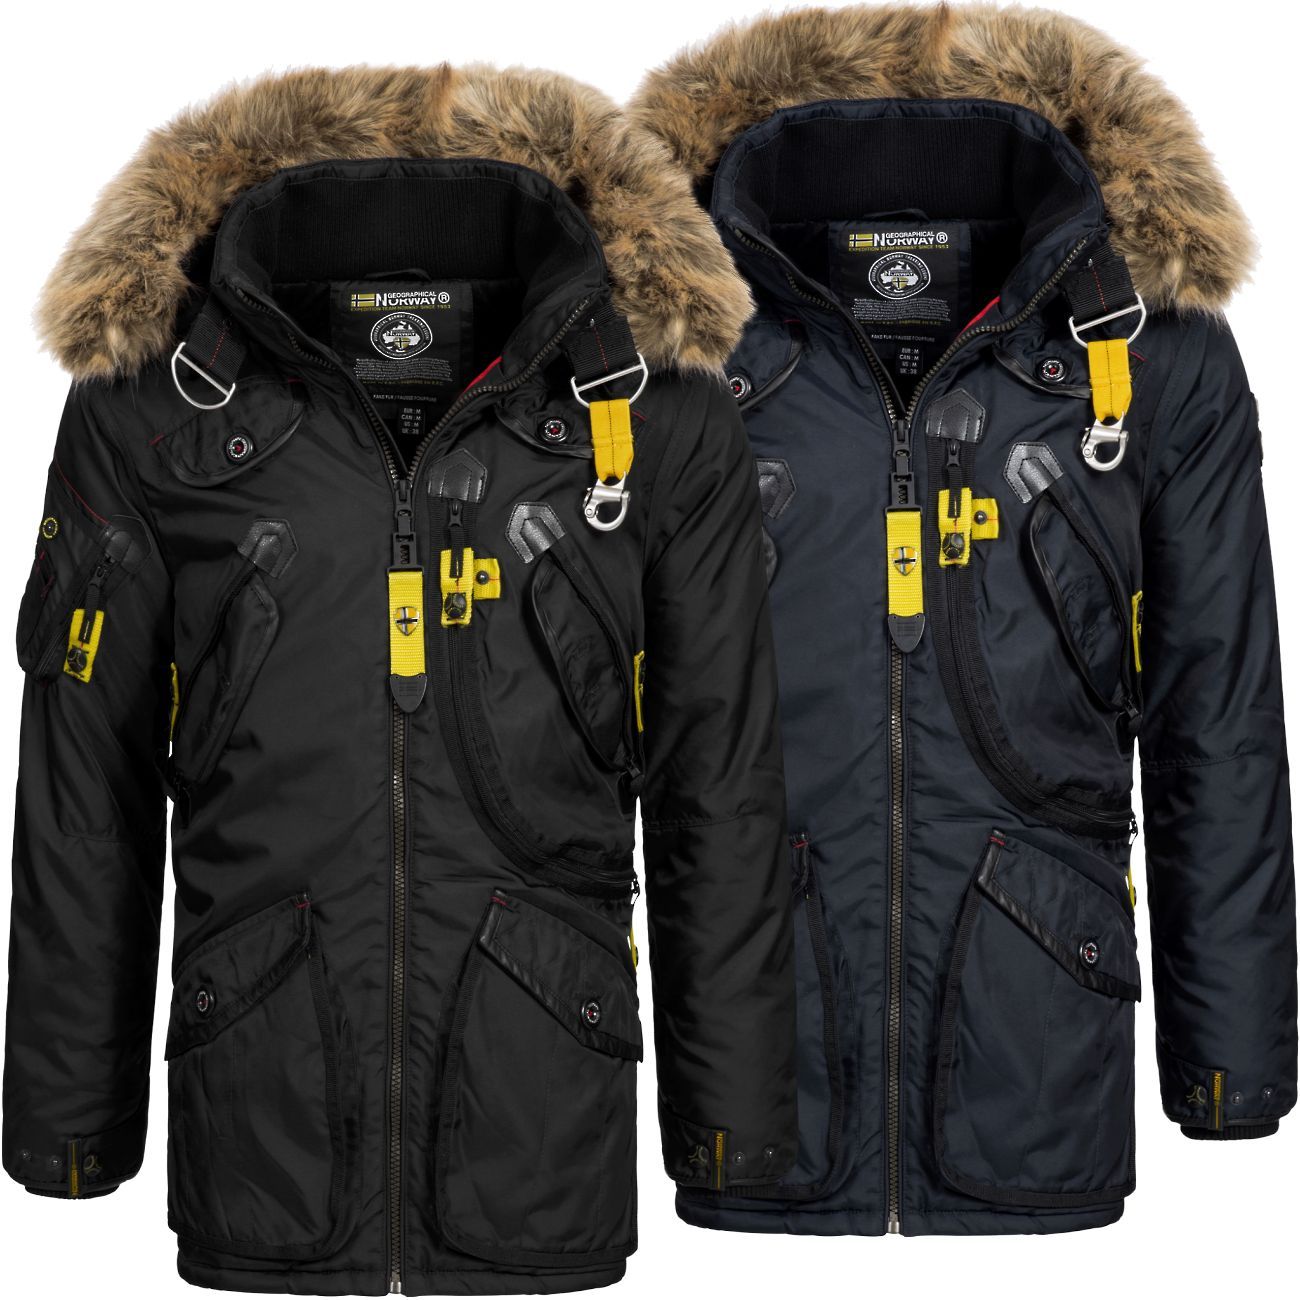 geographical norway herren winterparka arcos herrenjacke. Black Bedroom Furniture Sets. Home Design Ideas